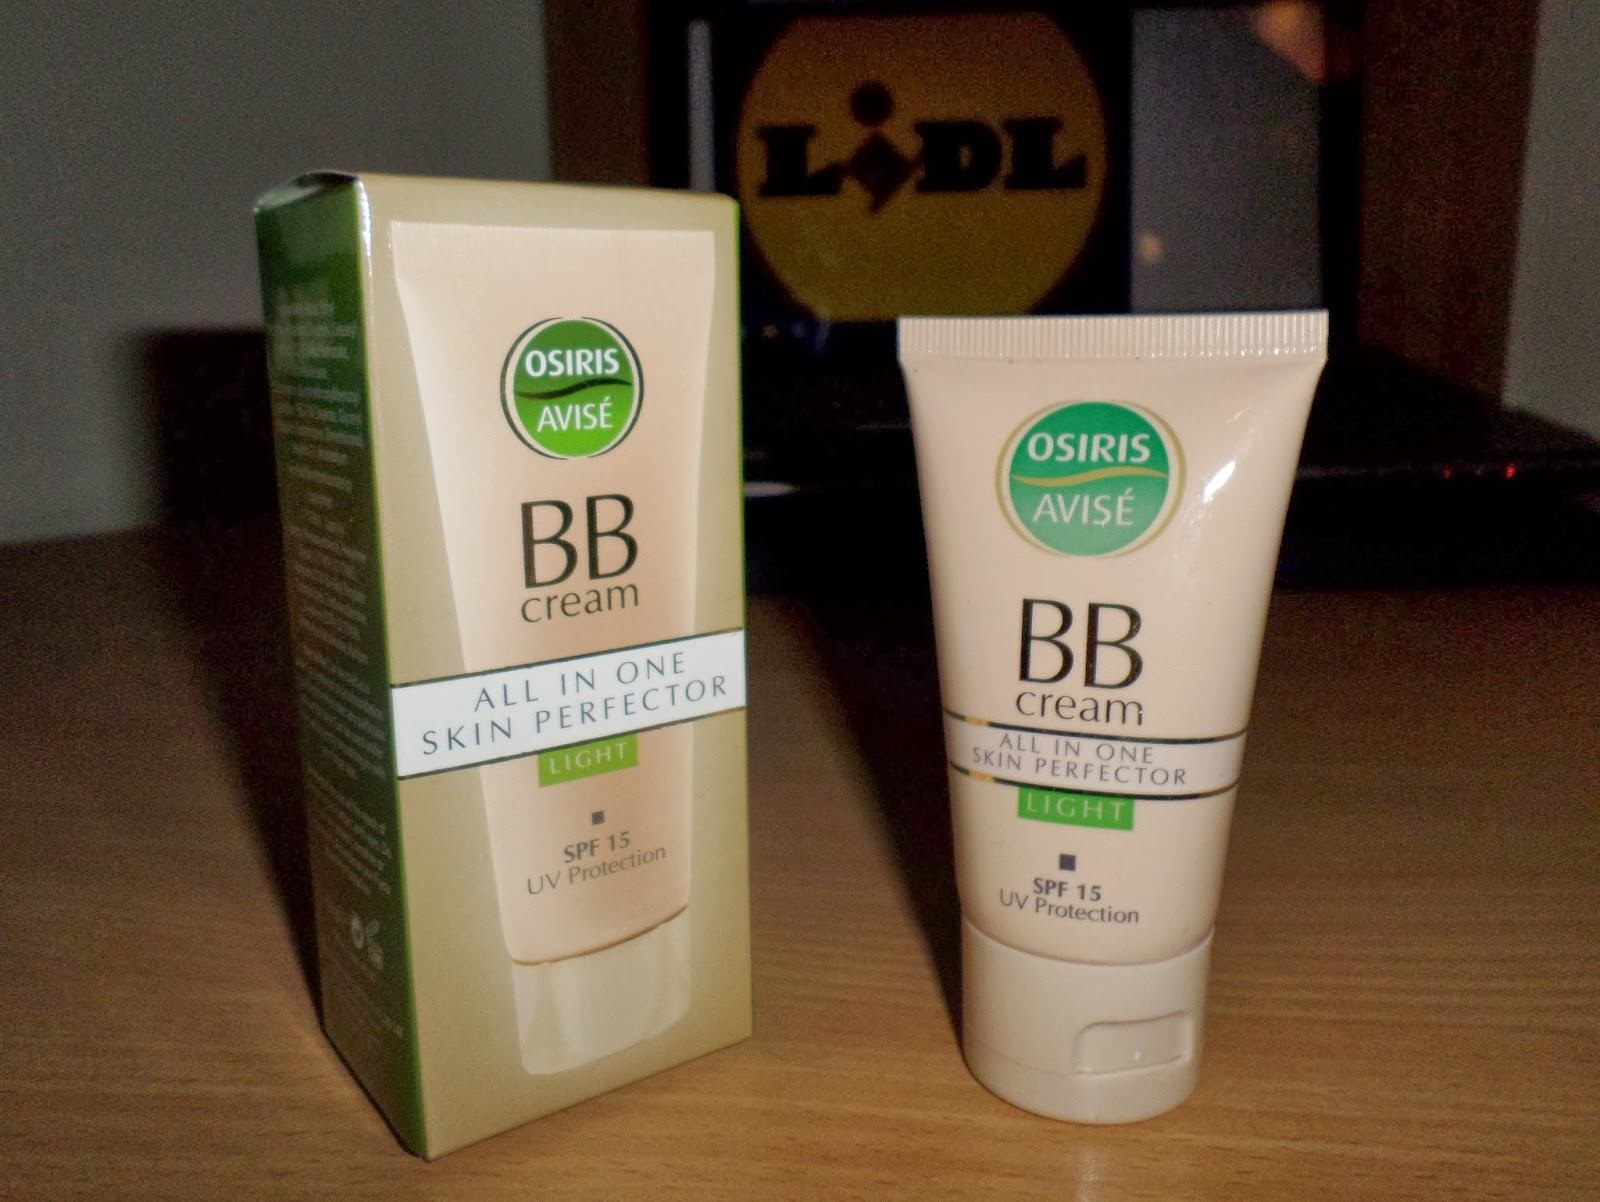 Osiris Avisé BB Cream from Lidl